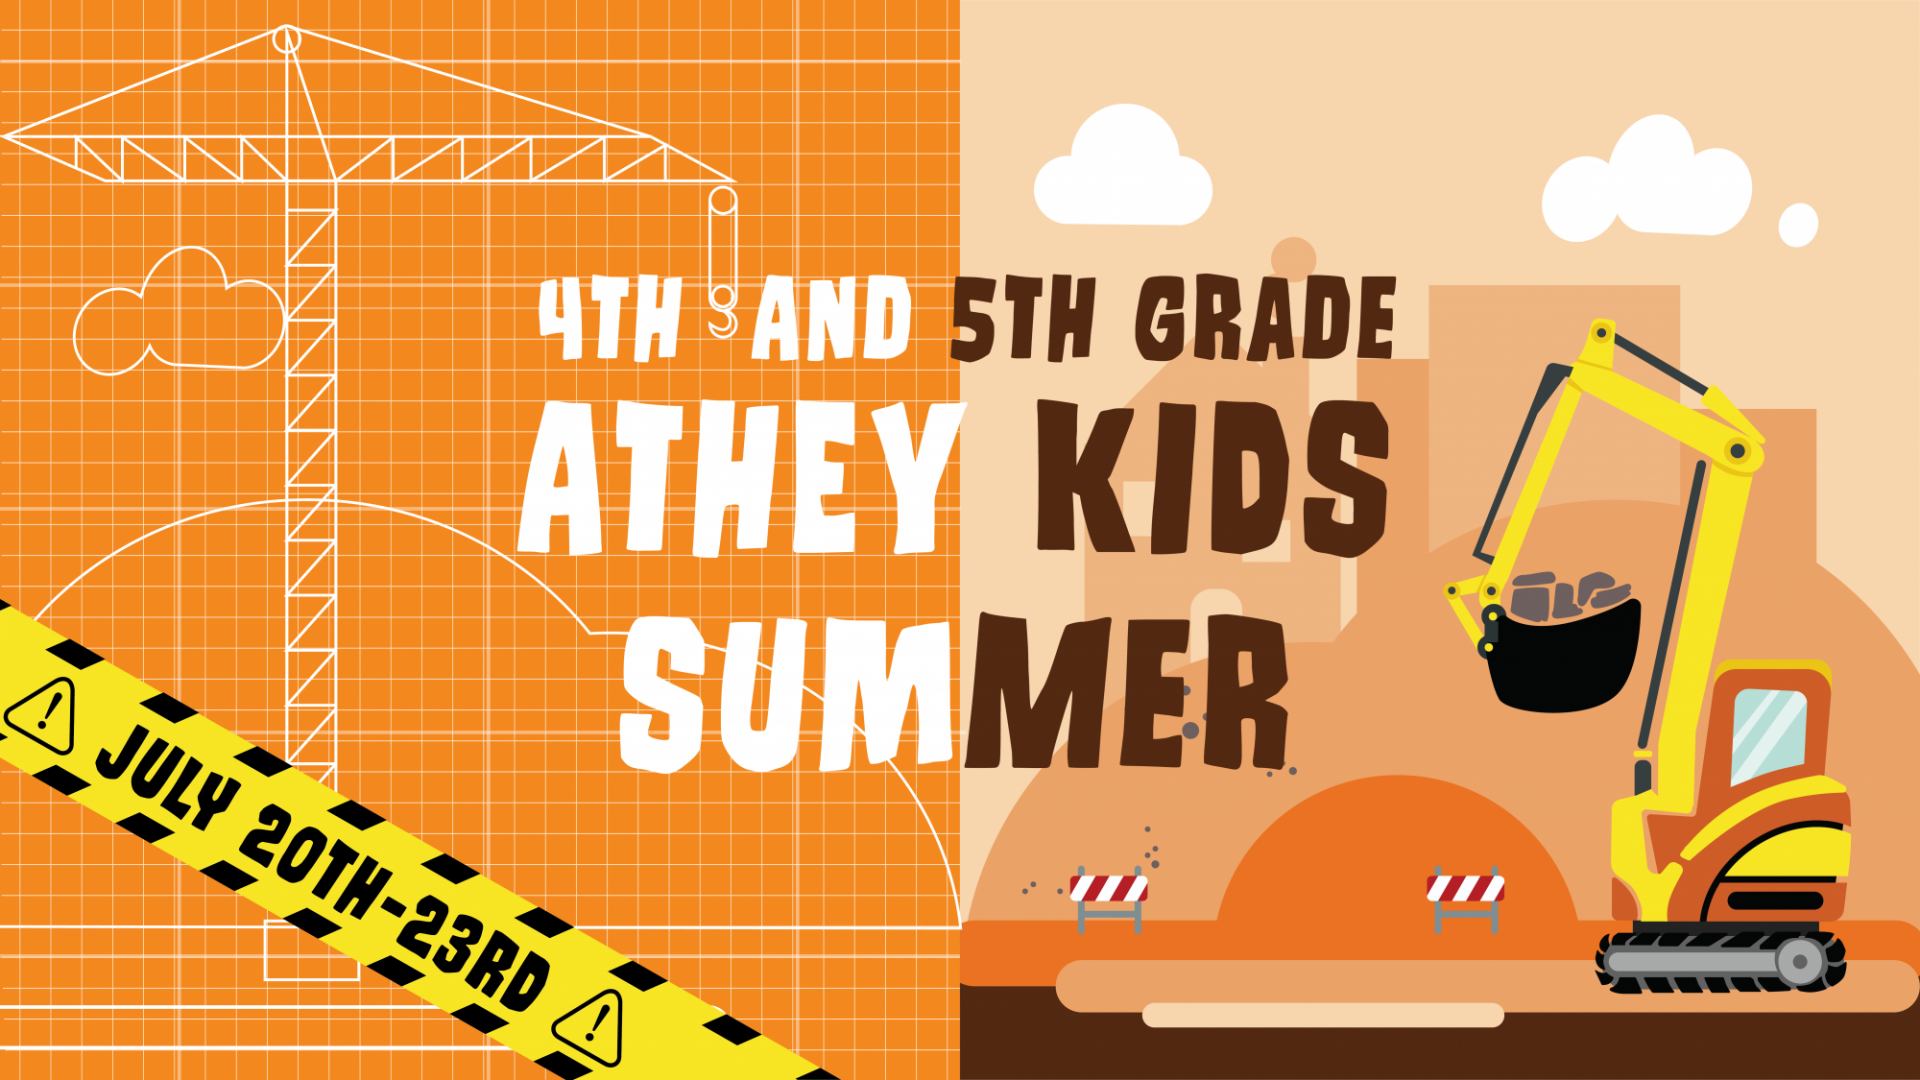 Poster for Athey Kids Summer 4th and 5th Grade